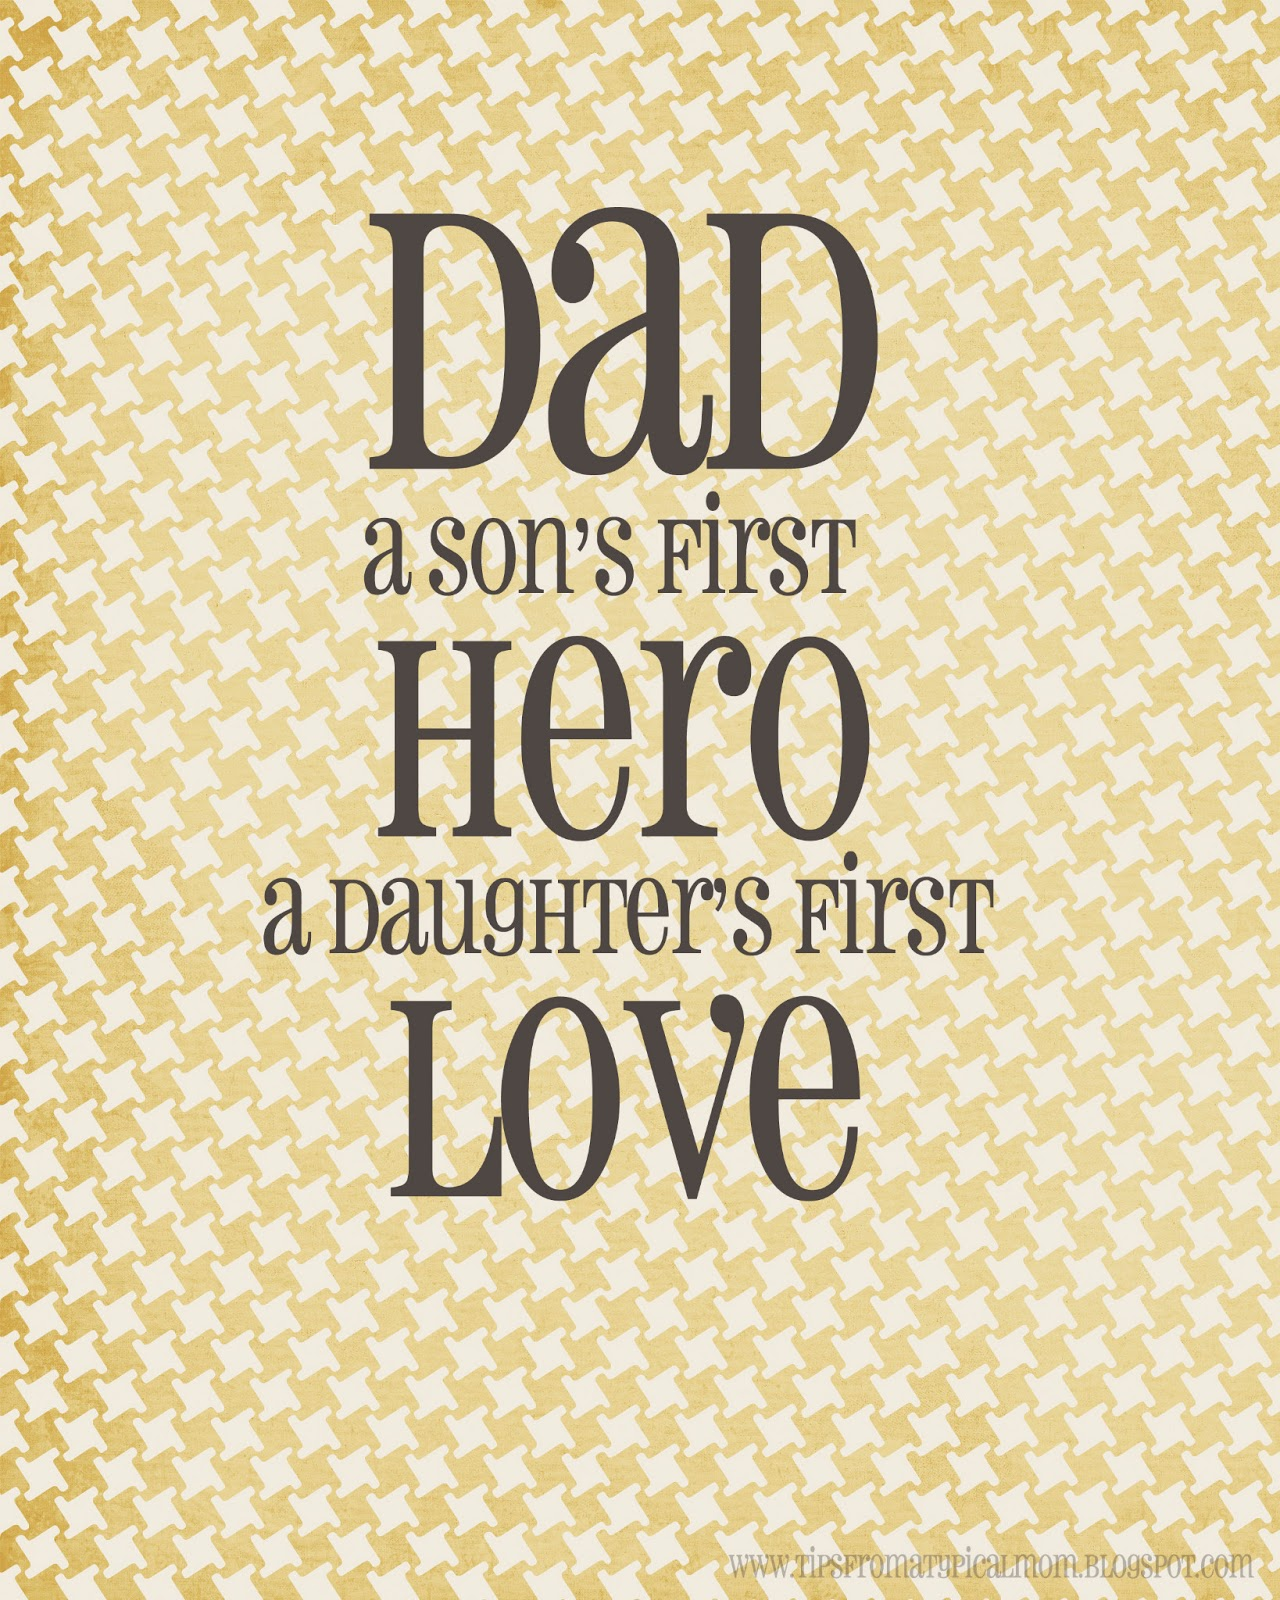 FREE Printable - Father's Day Son's hero, daughter's love